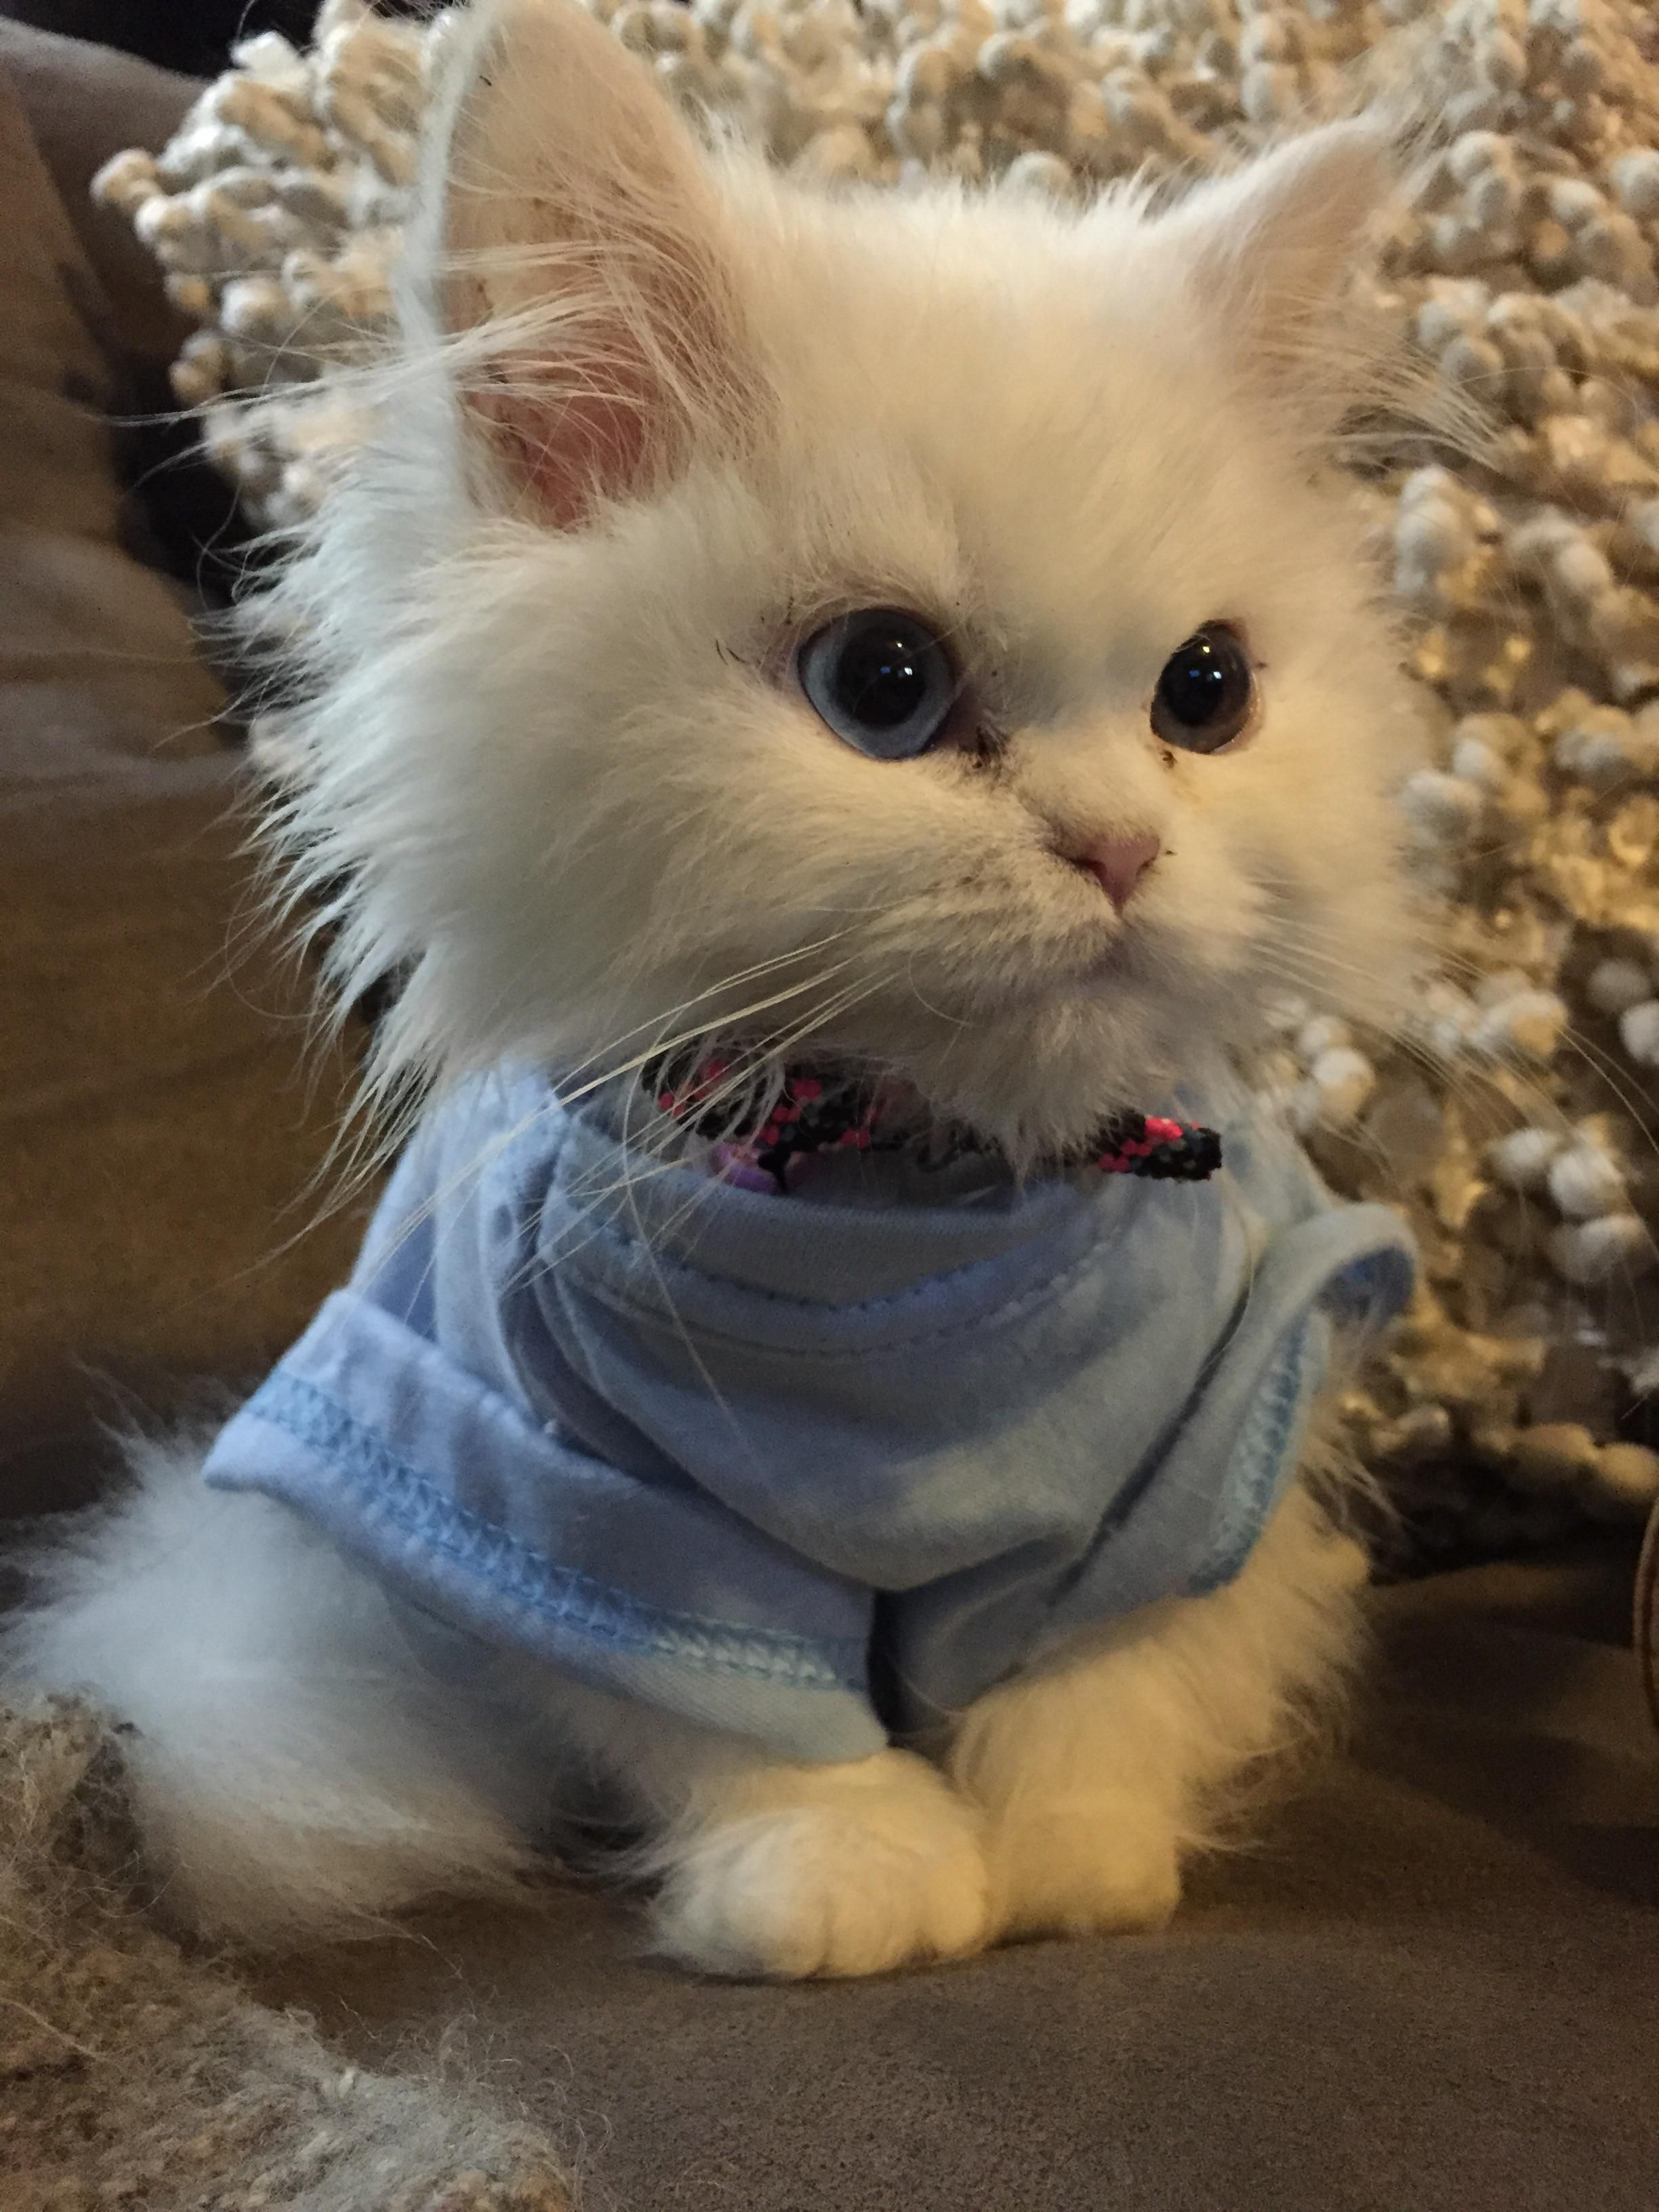 Too Cute For Words Kittens Cutest Cute Animals Cute Baby Animals